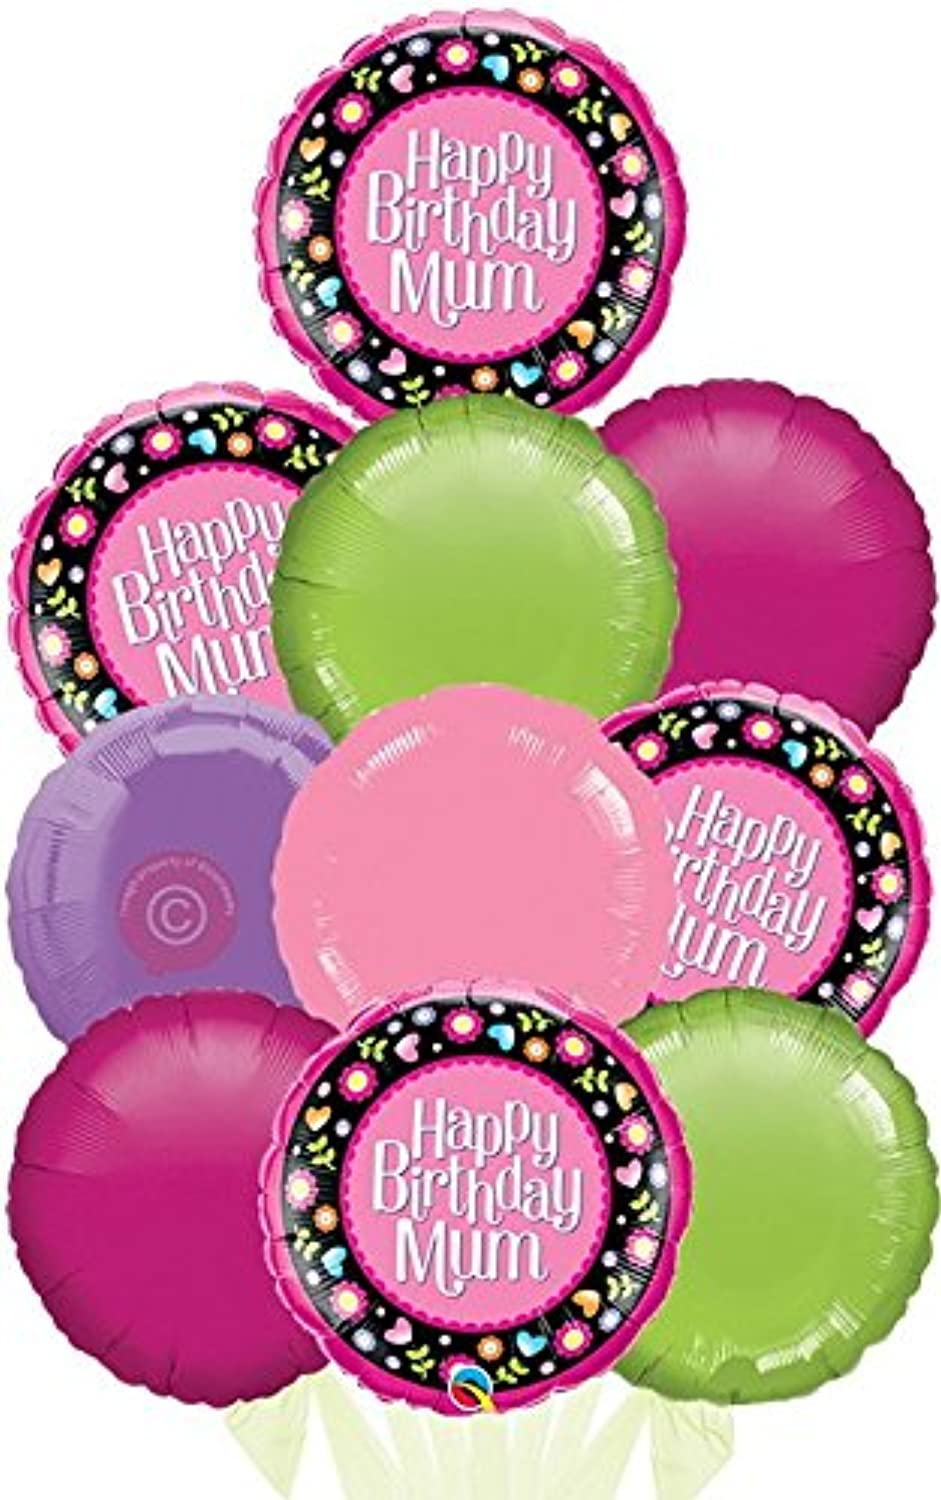 Happy Birthday Mum Pink and Floral Border  Inflated Birthday Helium Balloon Delivered in a Box  Biggest Bouquet  10 Balloons  Bloonaway